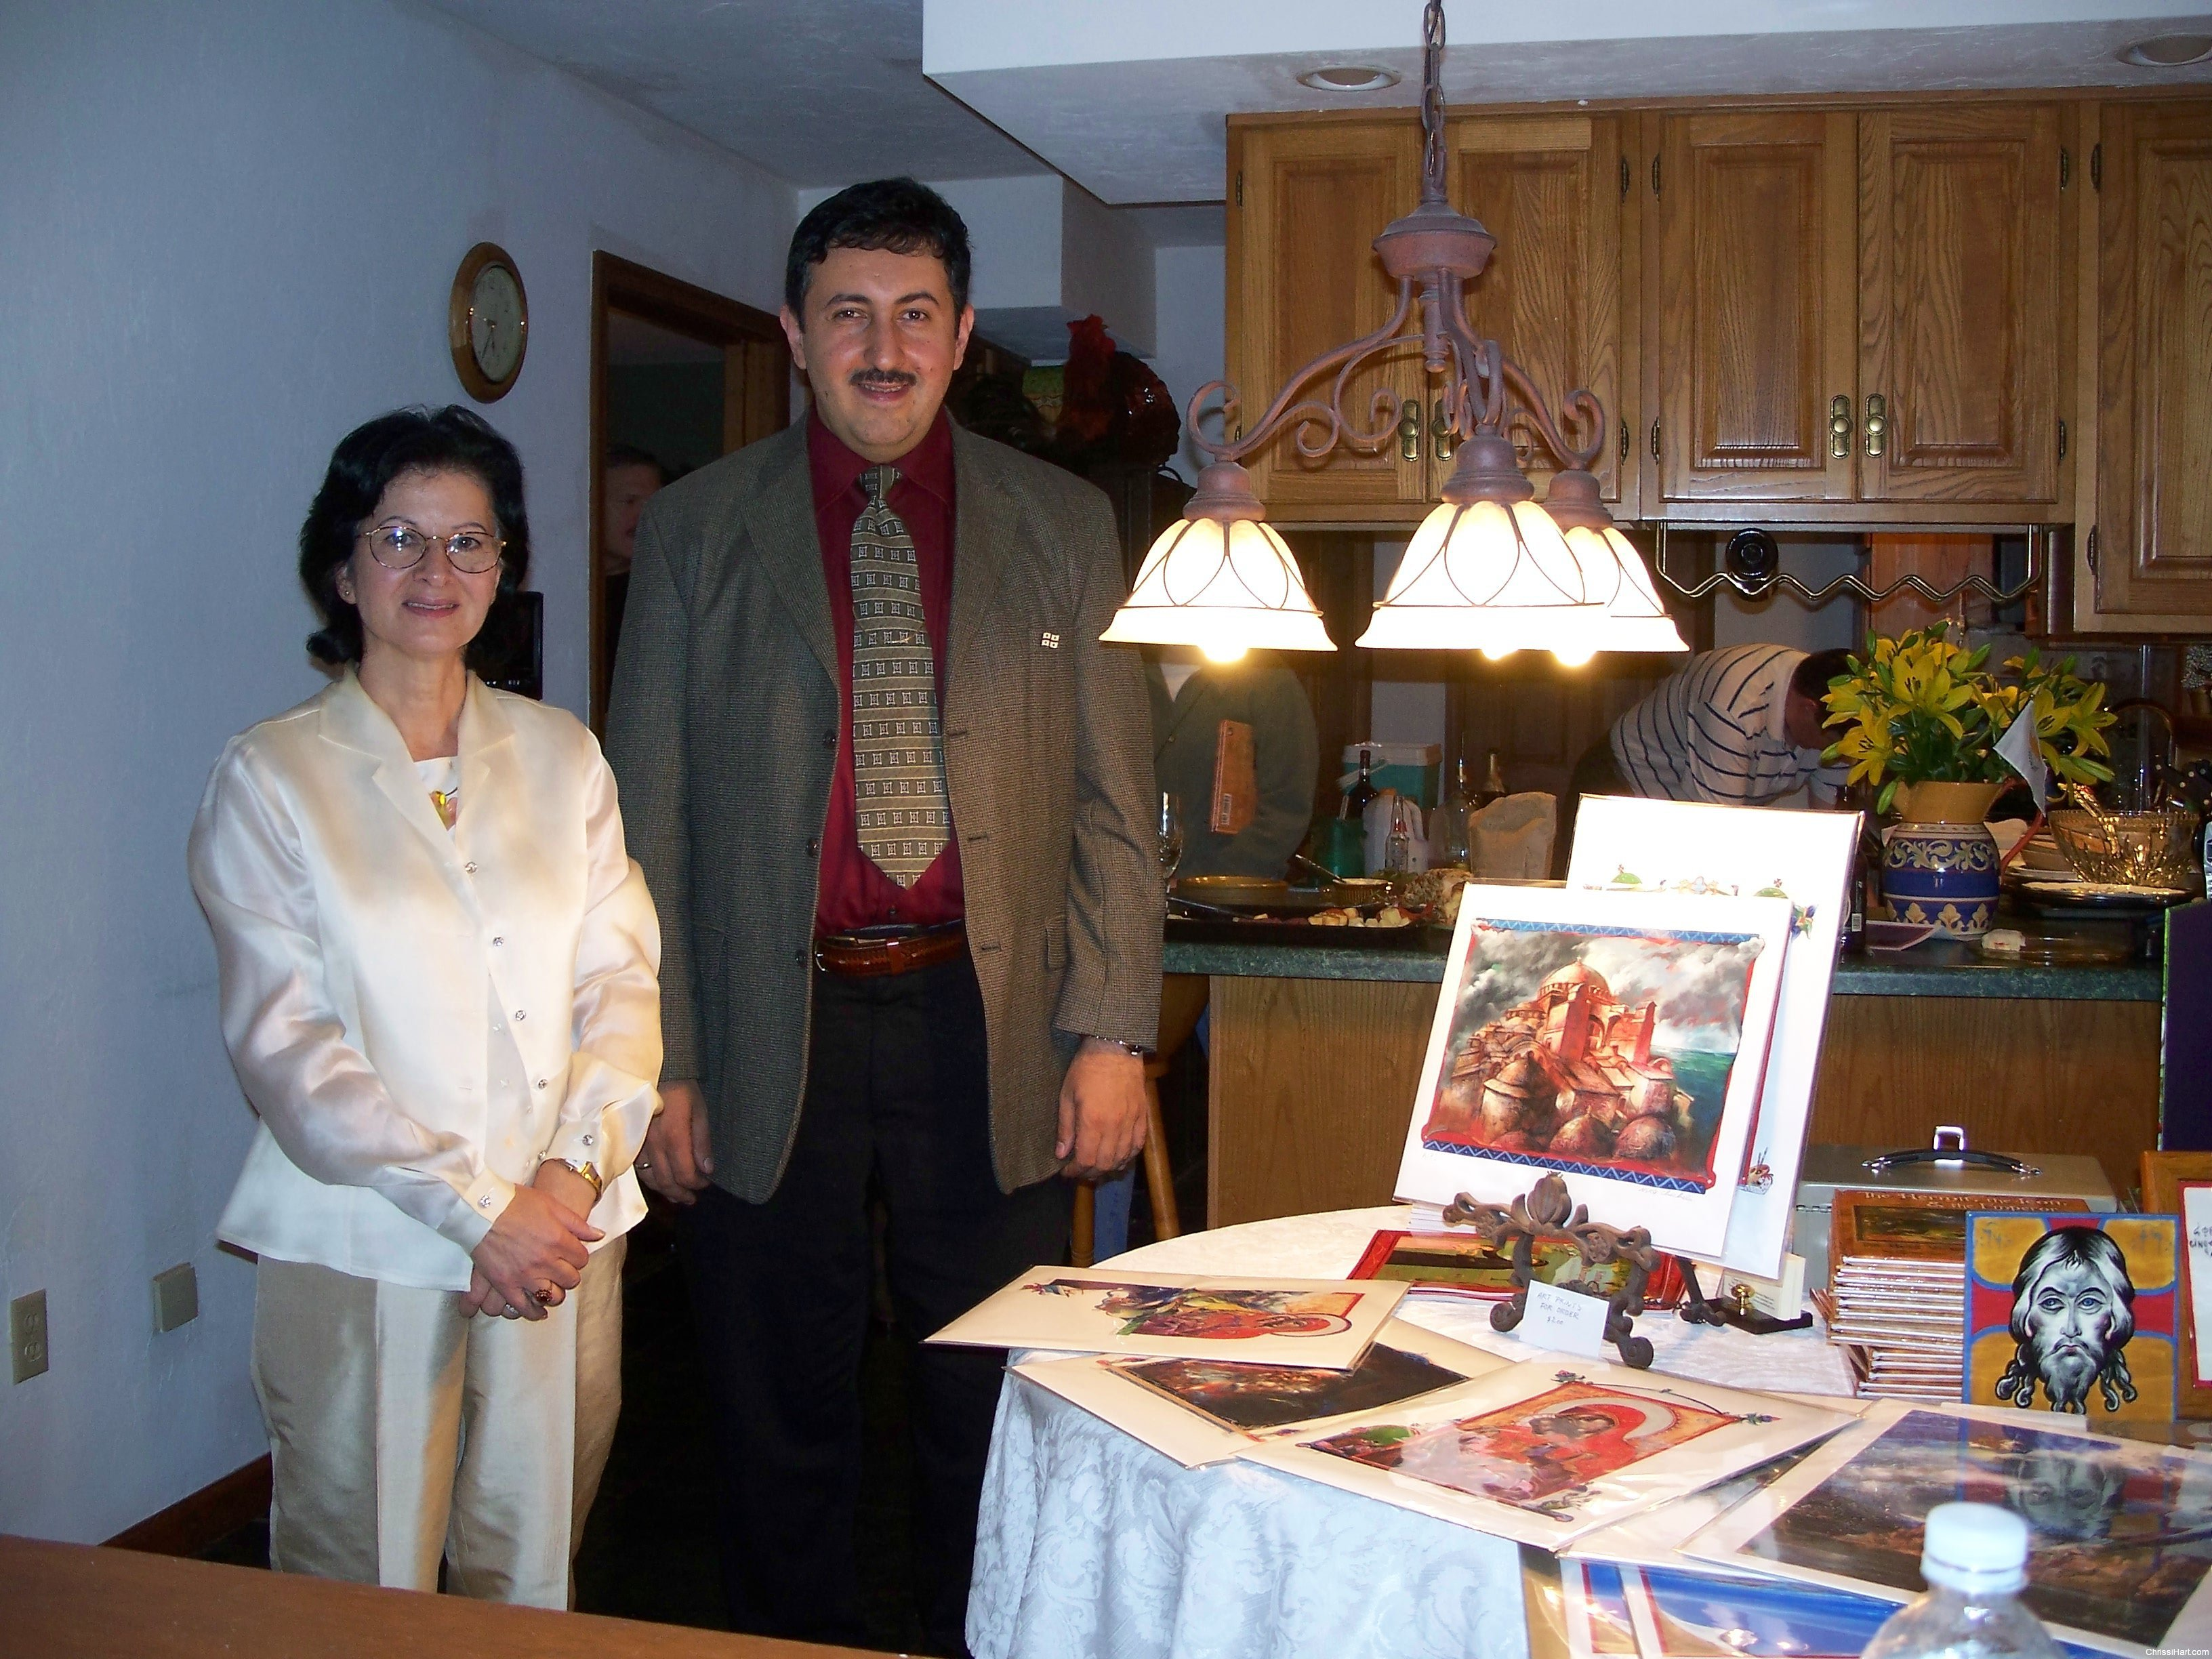 Author, Chrissi Hart and illustrator, Niko Chocheli